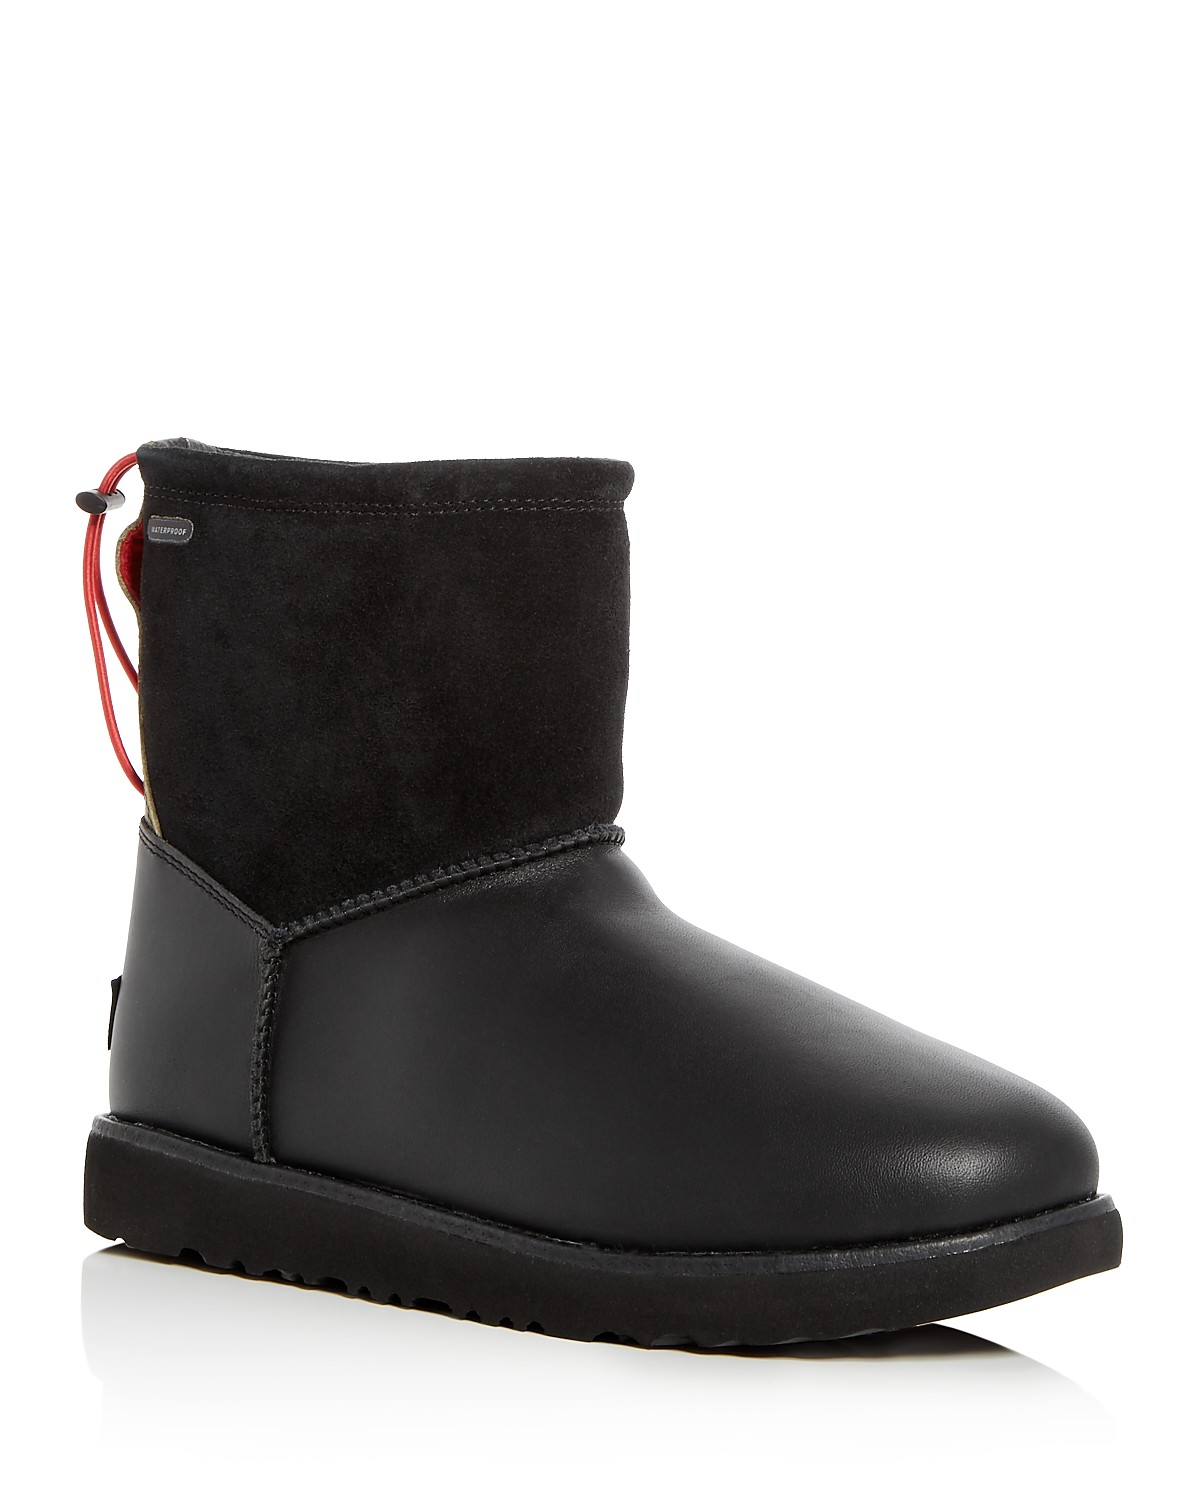 UGG Classic Toggle Waterproof Suede Boots WalHKy